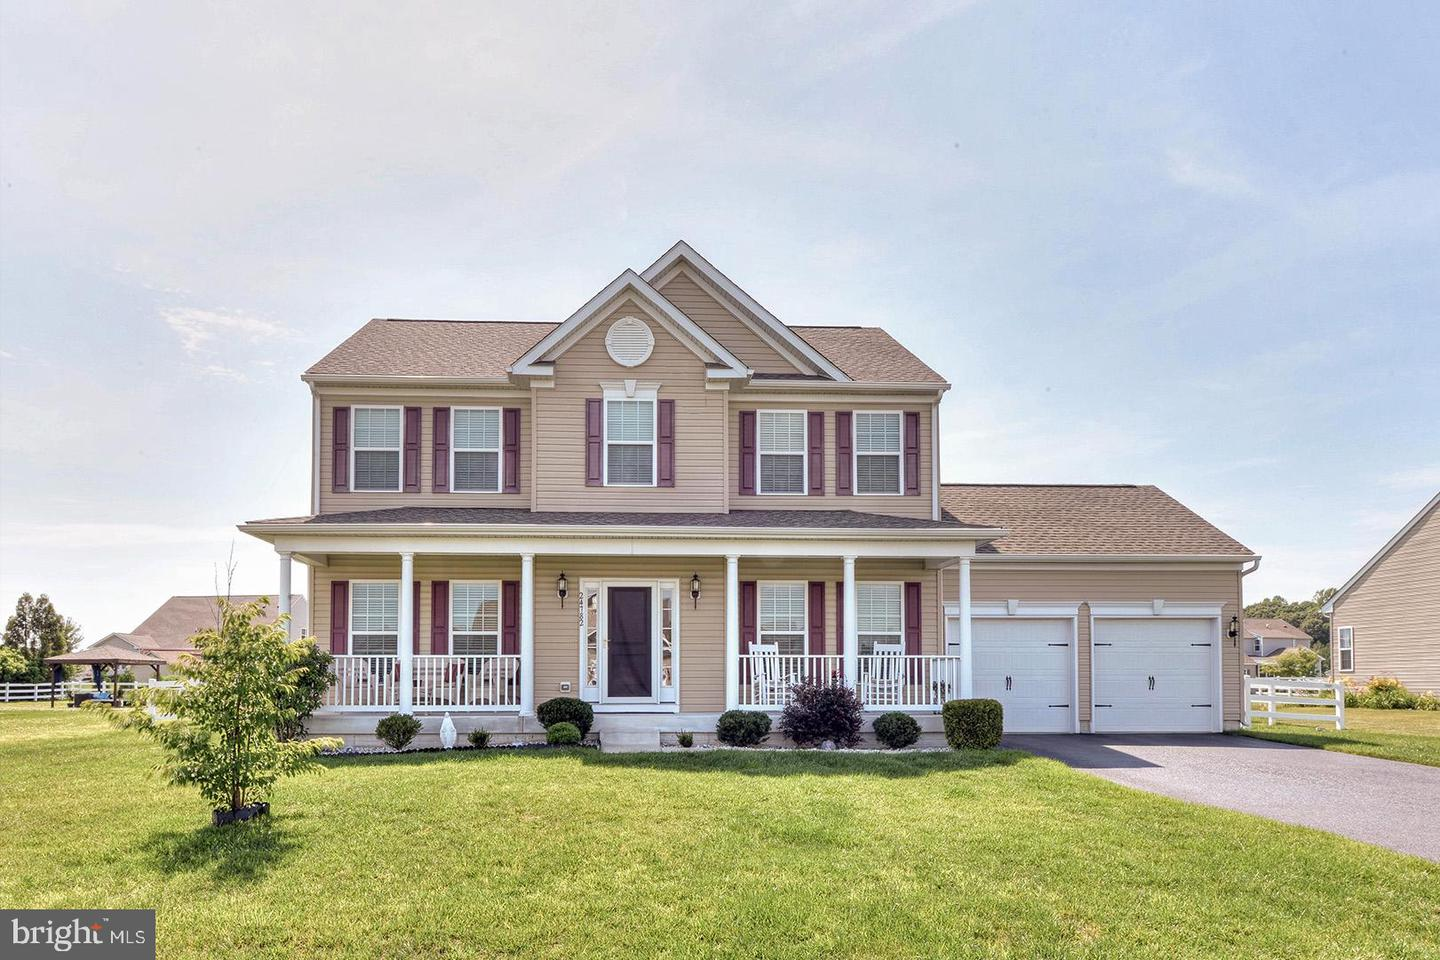 DESU142244-301826770794-2019-06-25-11-20-07 Single Family Homes for Sale in Rehoboth Beach, Lewes and More - Rehoboth Beach Real Estate - Bryce Lingo and Shaun Tull REALTORS, Rehoboth Beach, Delaware